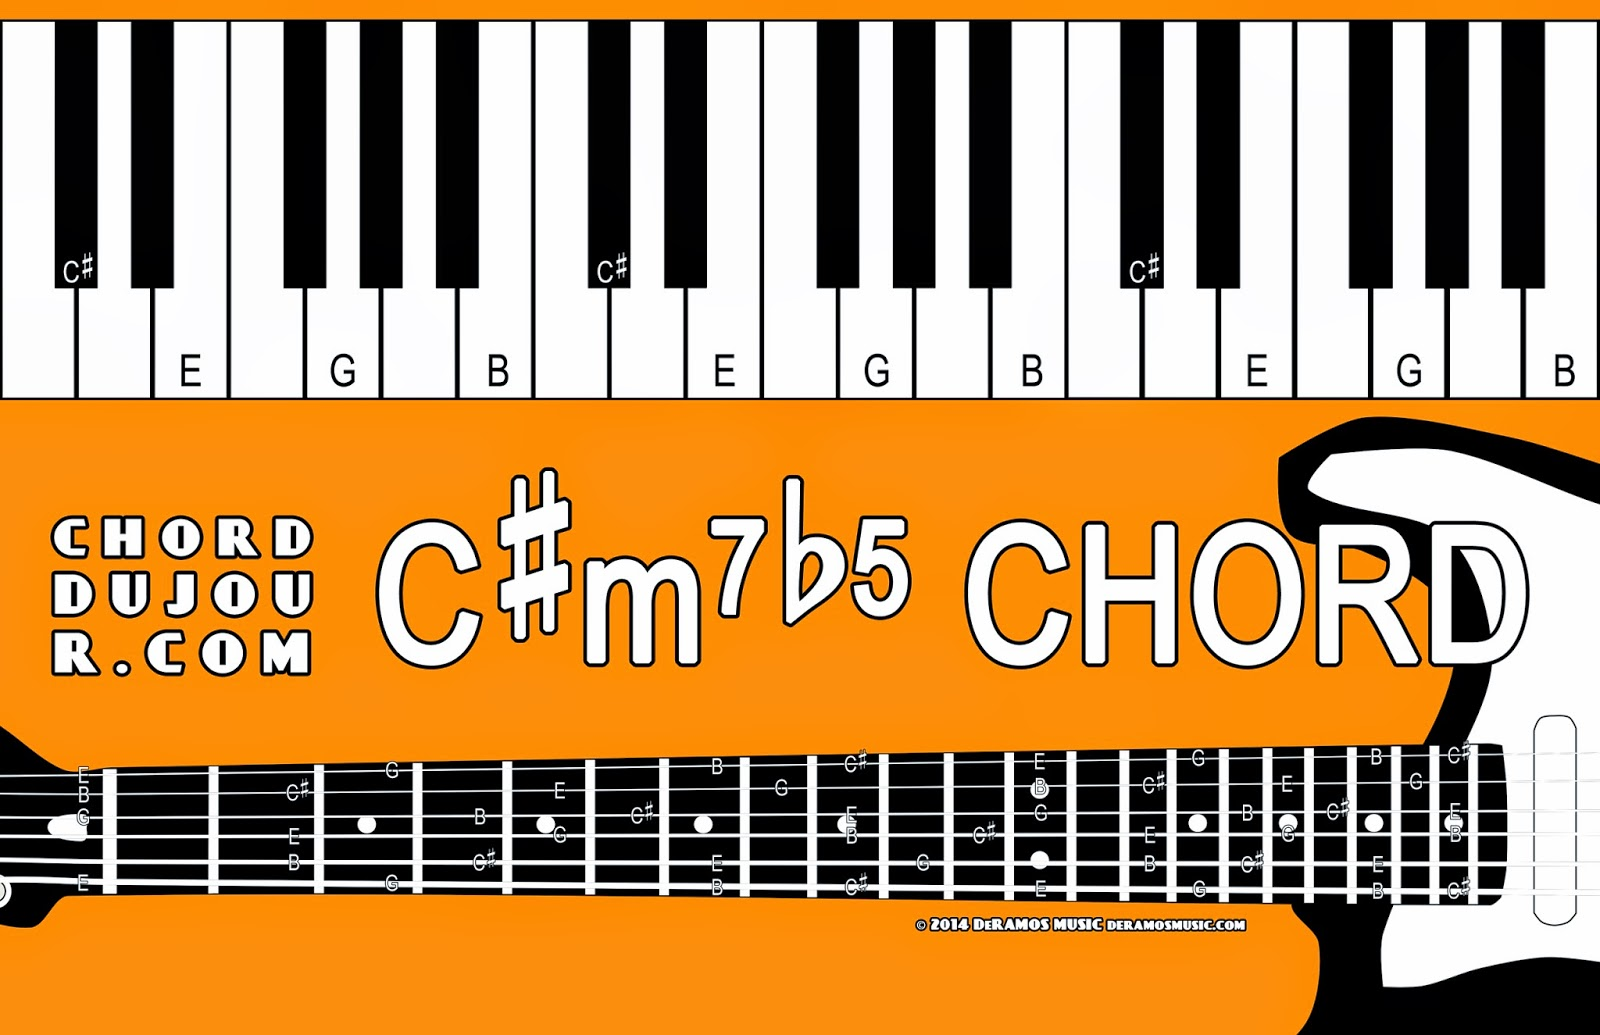 Chord du jour dictionary cm7b5 chord cm7b5 is a c sharp diminished triad with a minor 7th b note this chord is compatible with the c locrian mode hexwebz Gallery